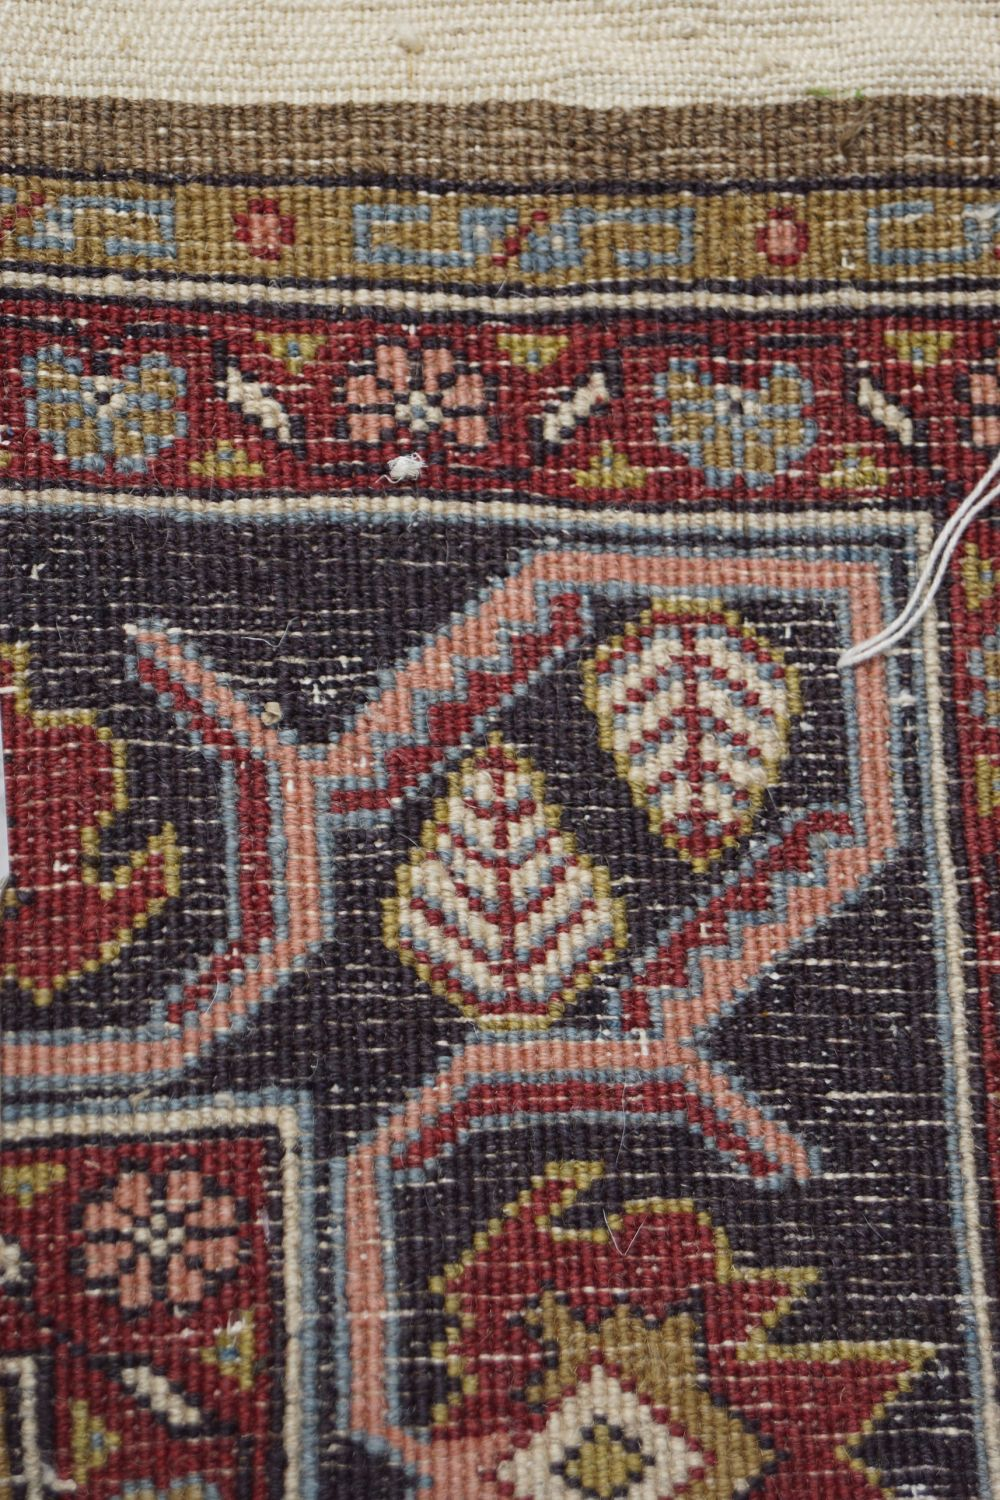 EARLY 20TH-CENTURY PERSIAN CARPET - Image 4 of 4